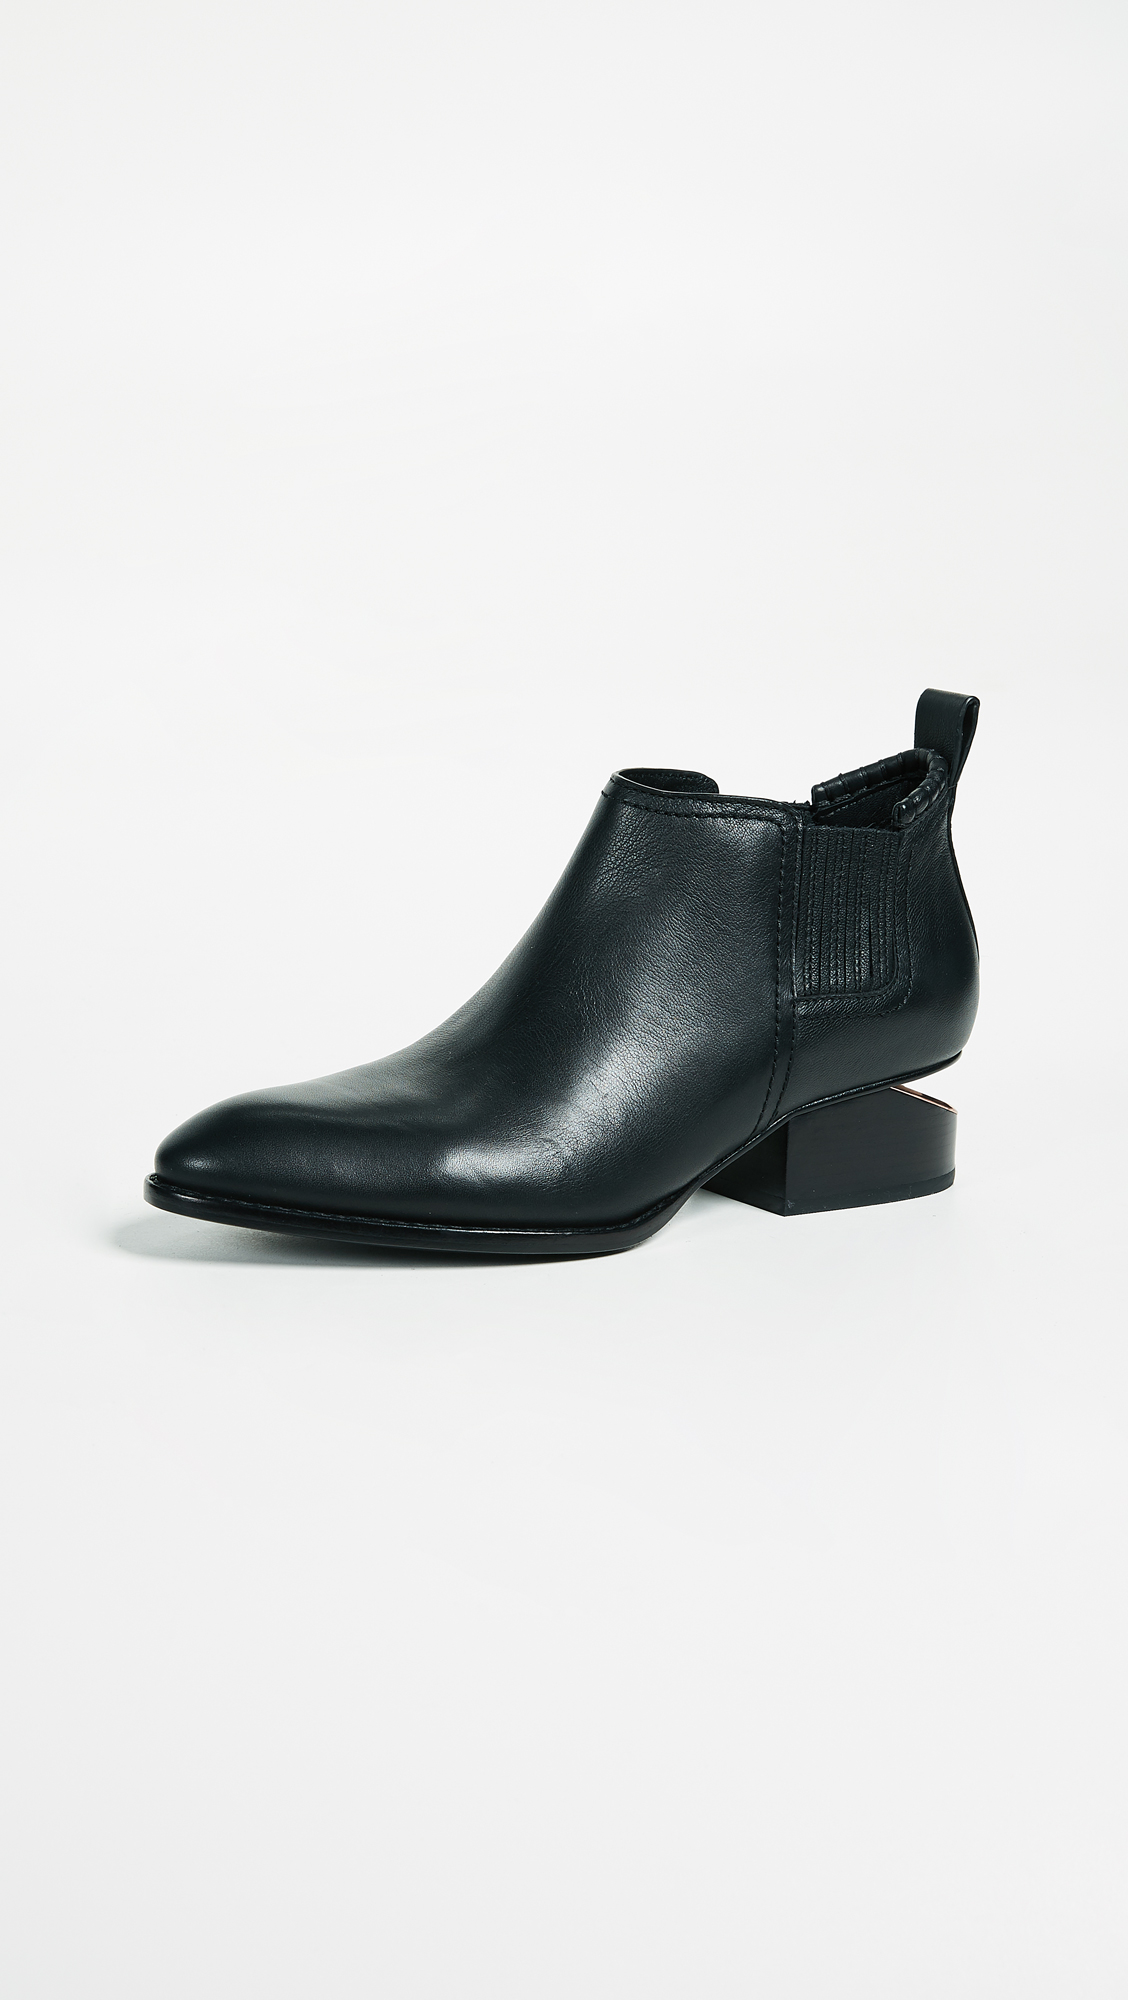 Opening Ceremony Black Floral Studded Chelsea Boots 5nsDmiw